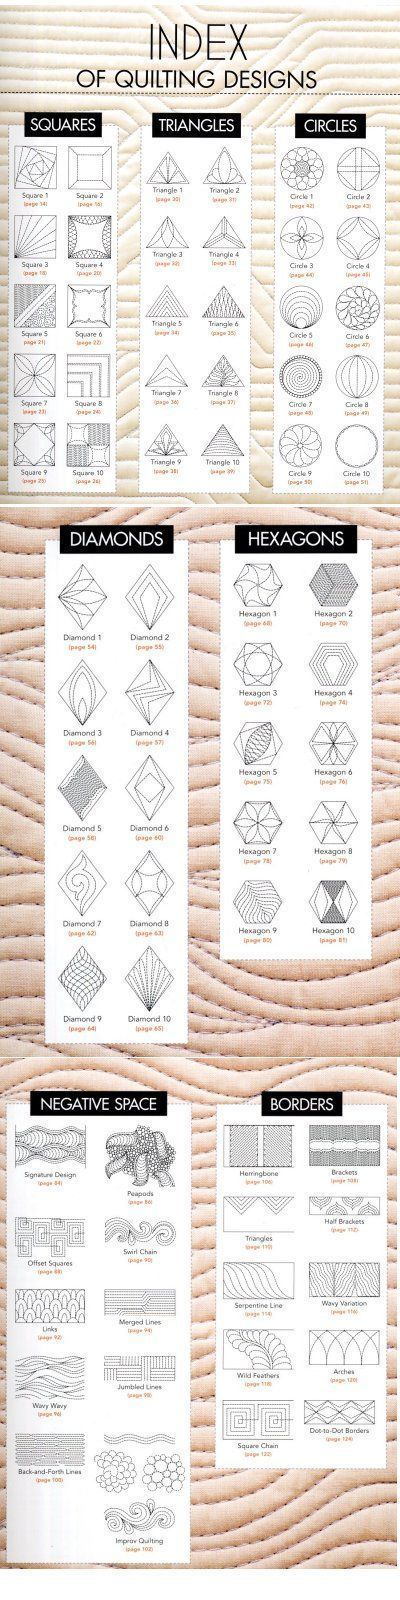 HEXAGON SWAP: Index of Quilting Designs by Erica.com | innocent or ...